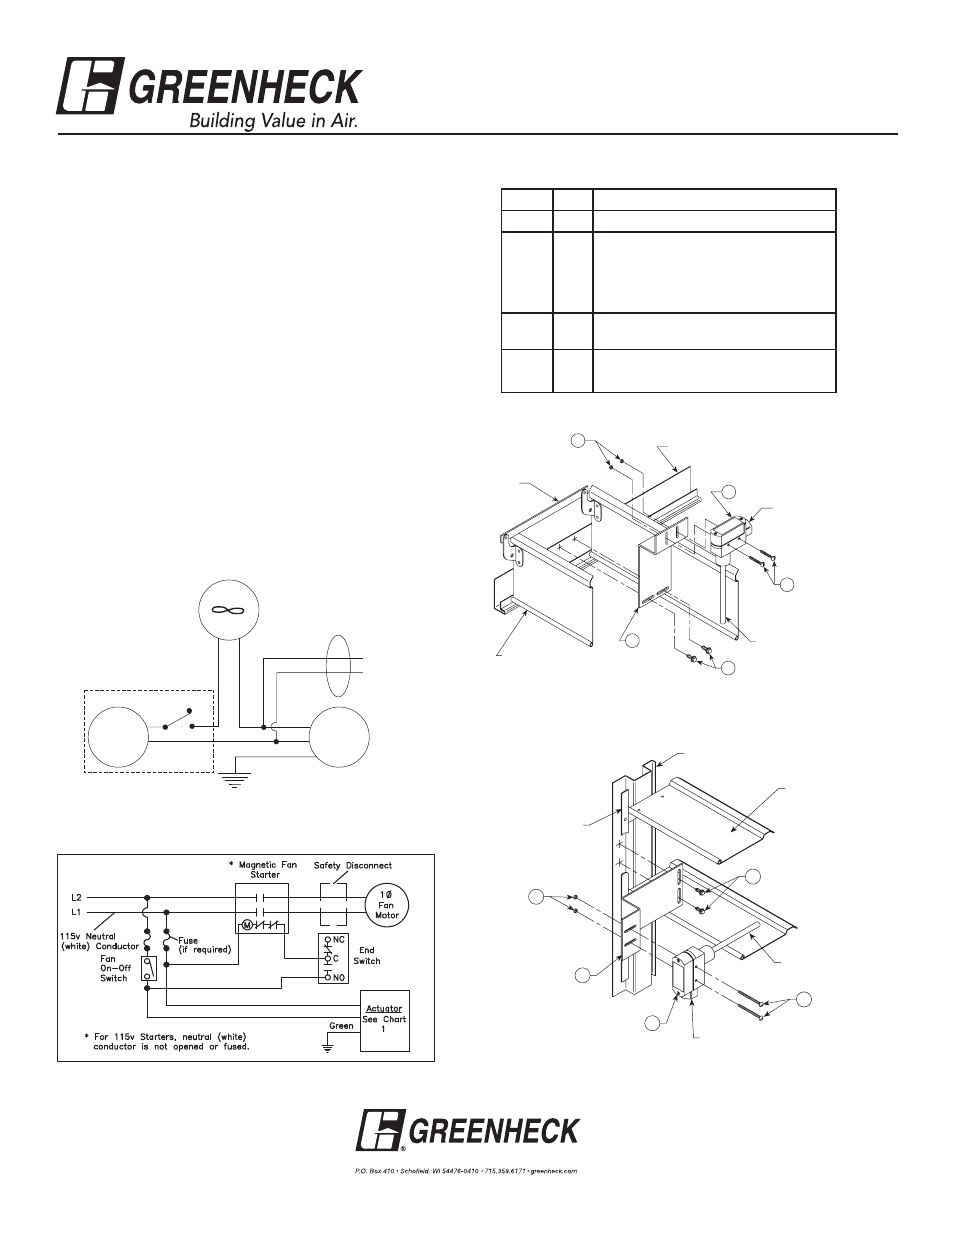 greenheck wd series end switch kit 452723 user manual 1 page Home Wiring Diagrams background image